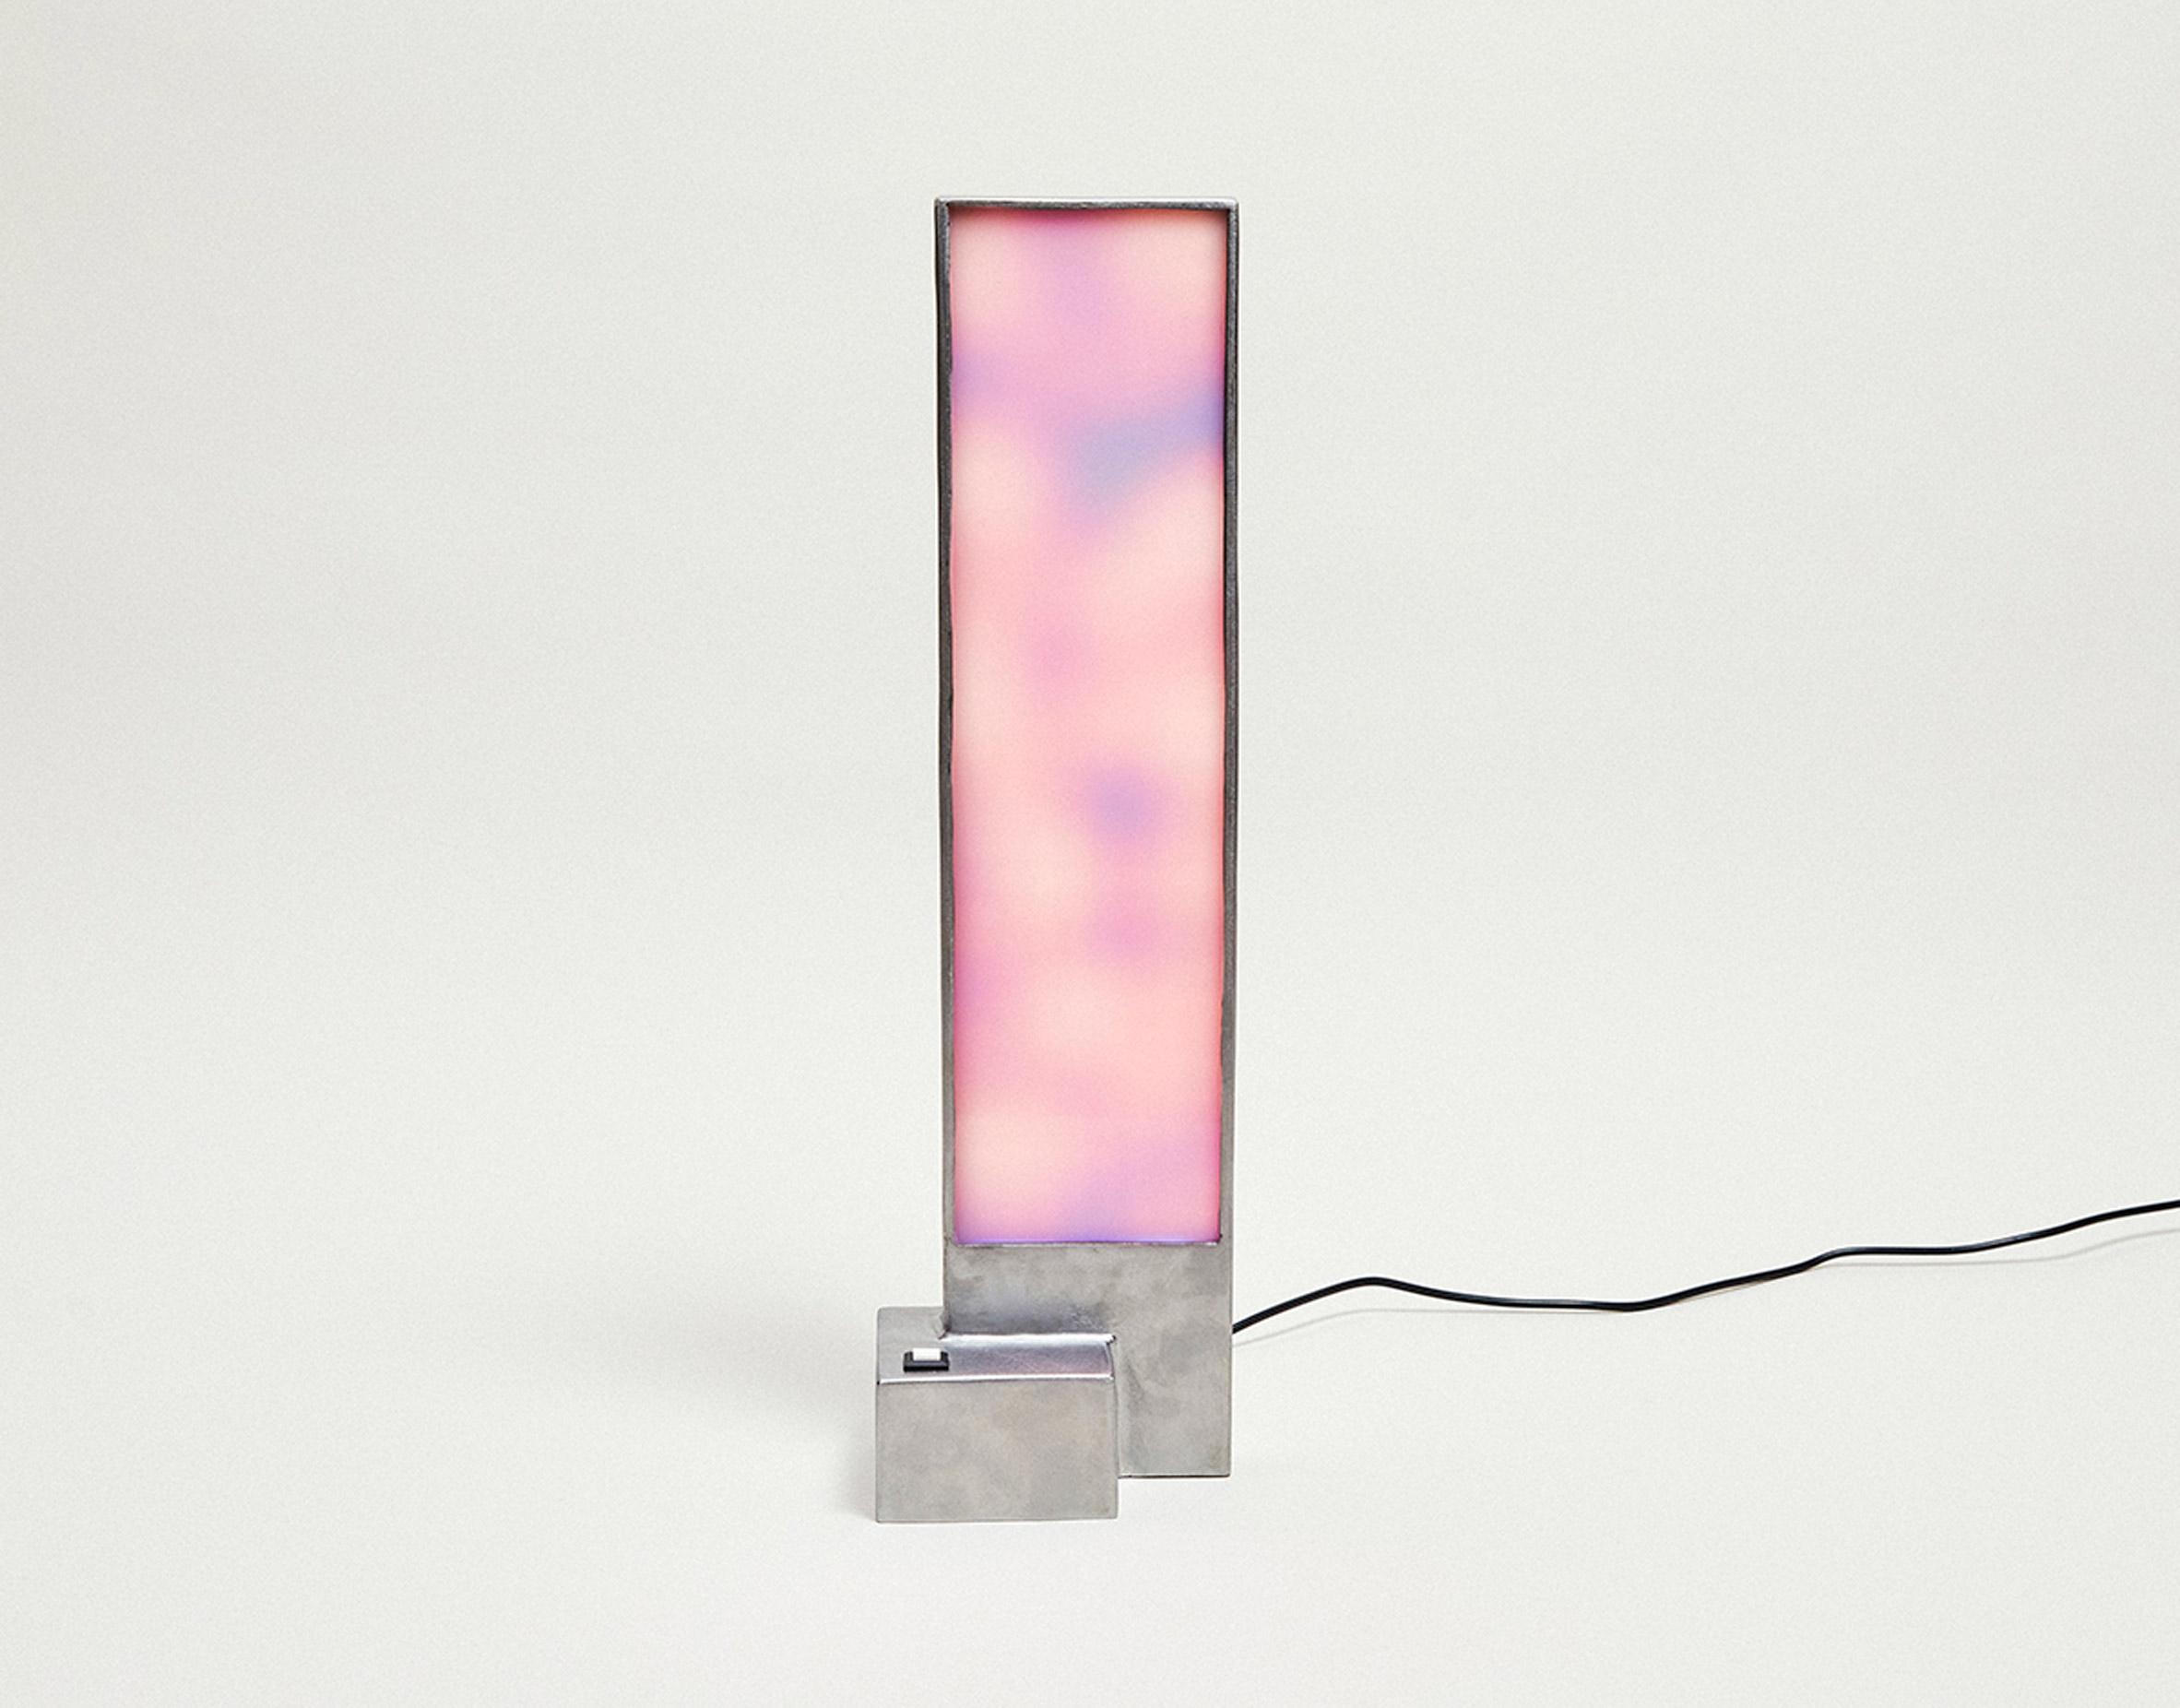 Radiator will present floor lamps such as the work of Niles Fromm